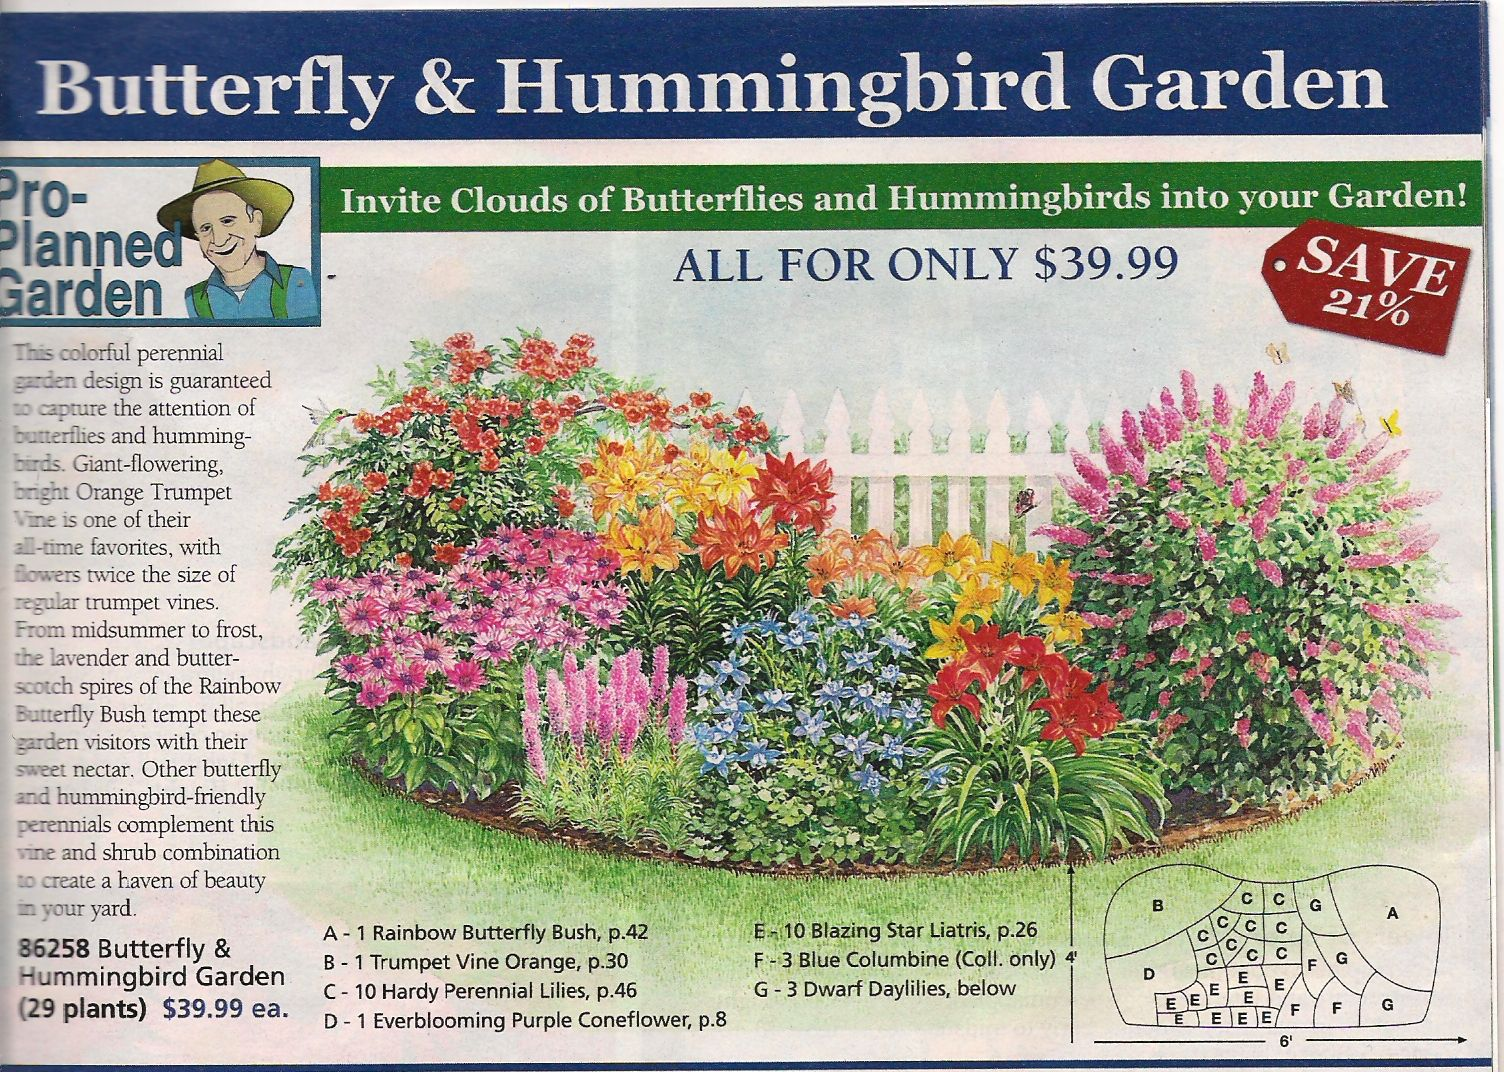 Garden plan from michigan bulb co for a butterfly garden for Garden plot layout ideas